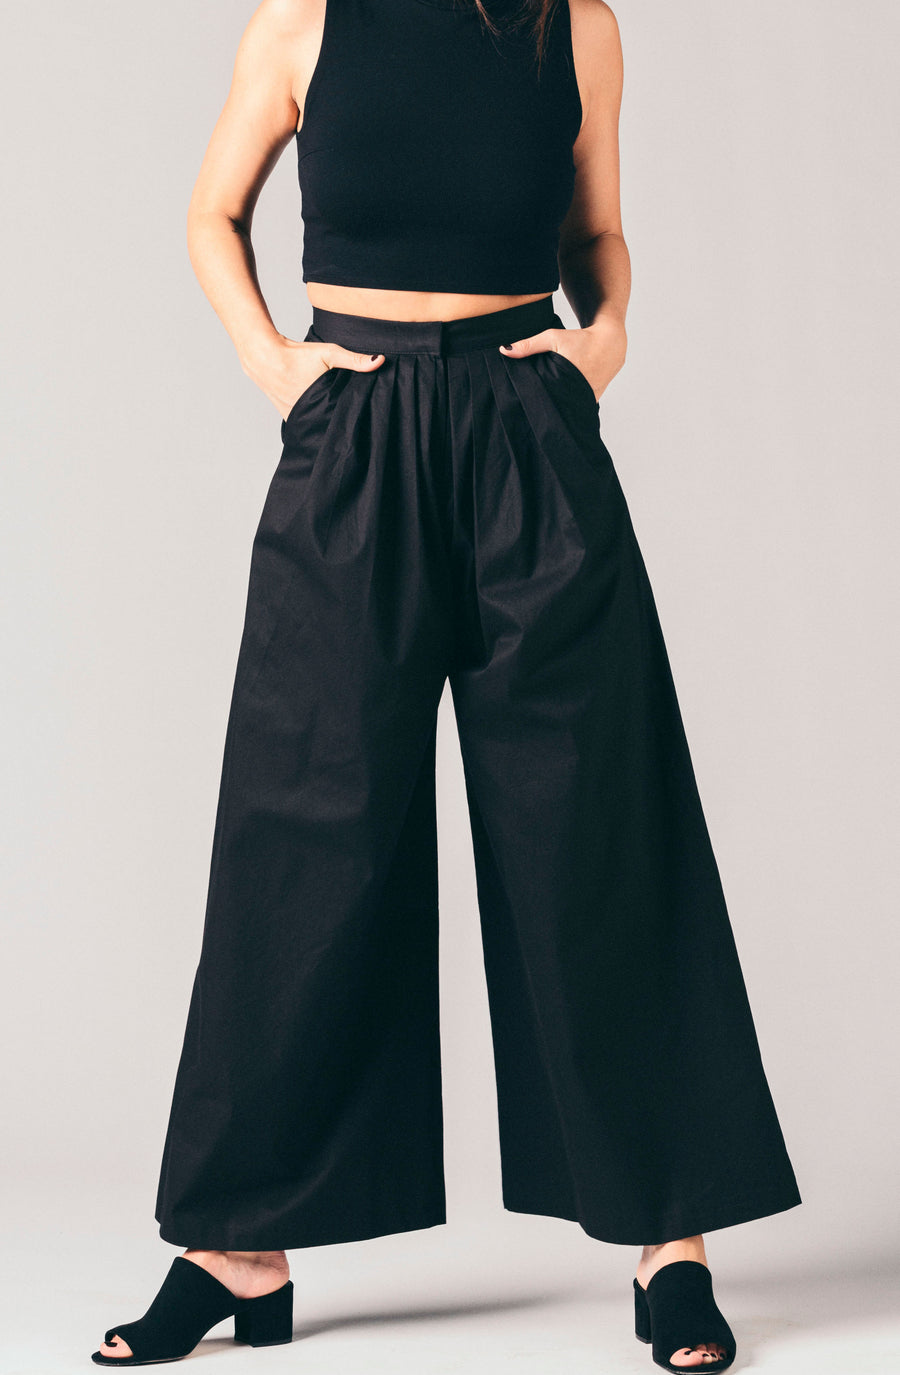 Style Mafia black high waisted, pleated wide leg trouser pants.